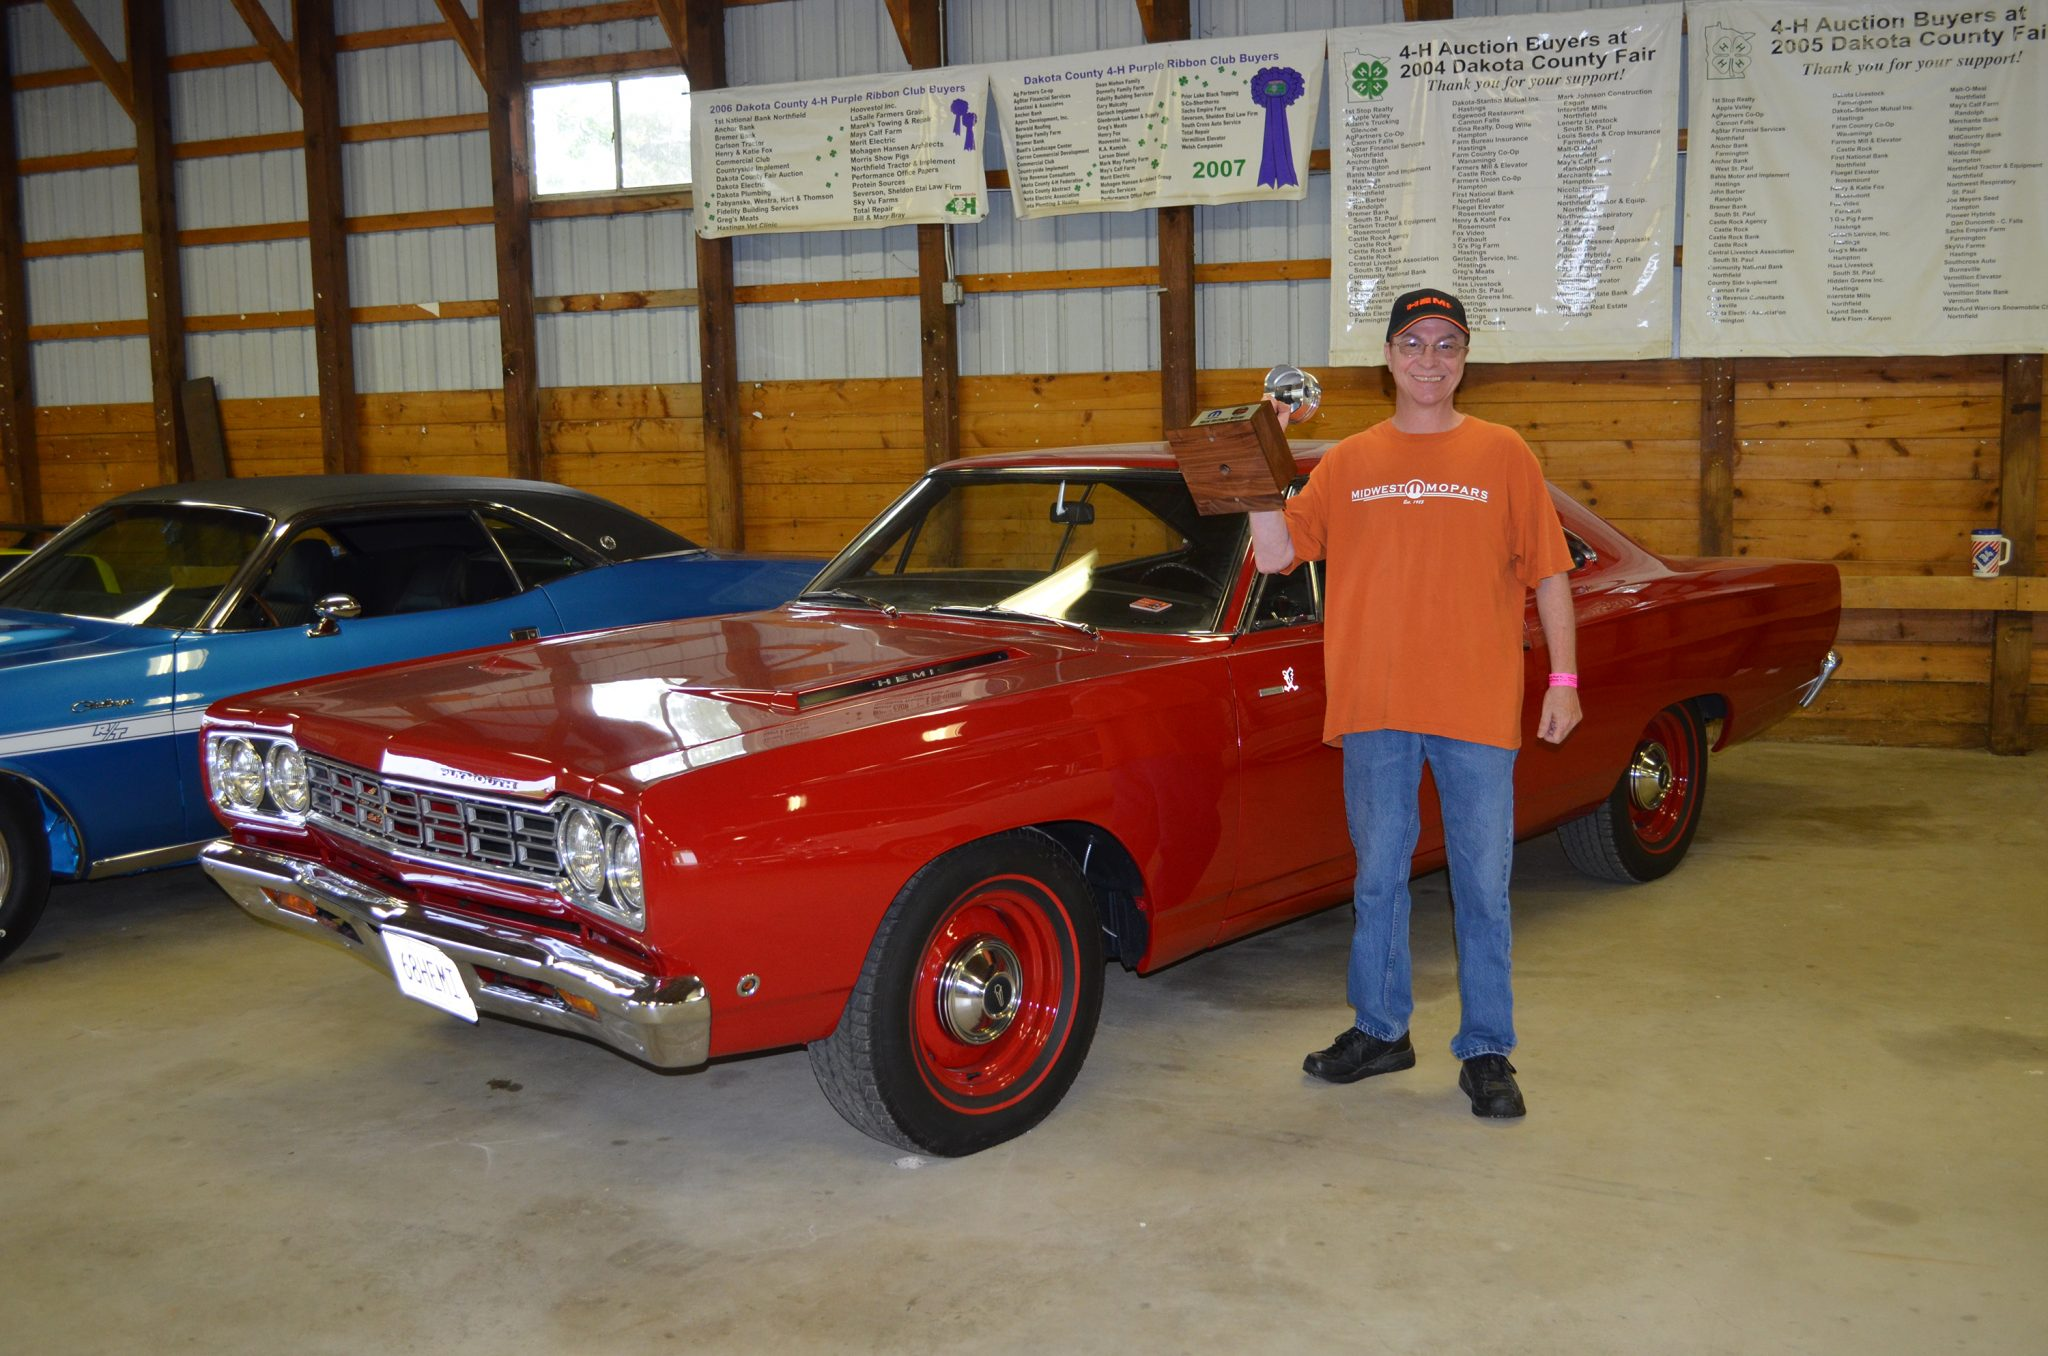 Top Eliminator HEMI Heritage winner Patrick O'Leary's 1968 Plymouth Road Runner